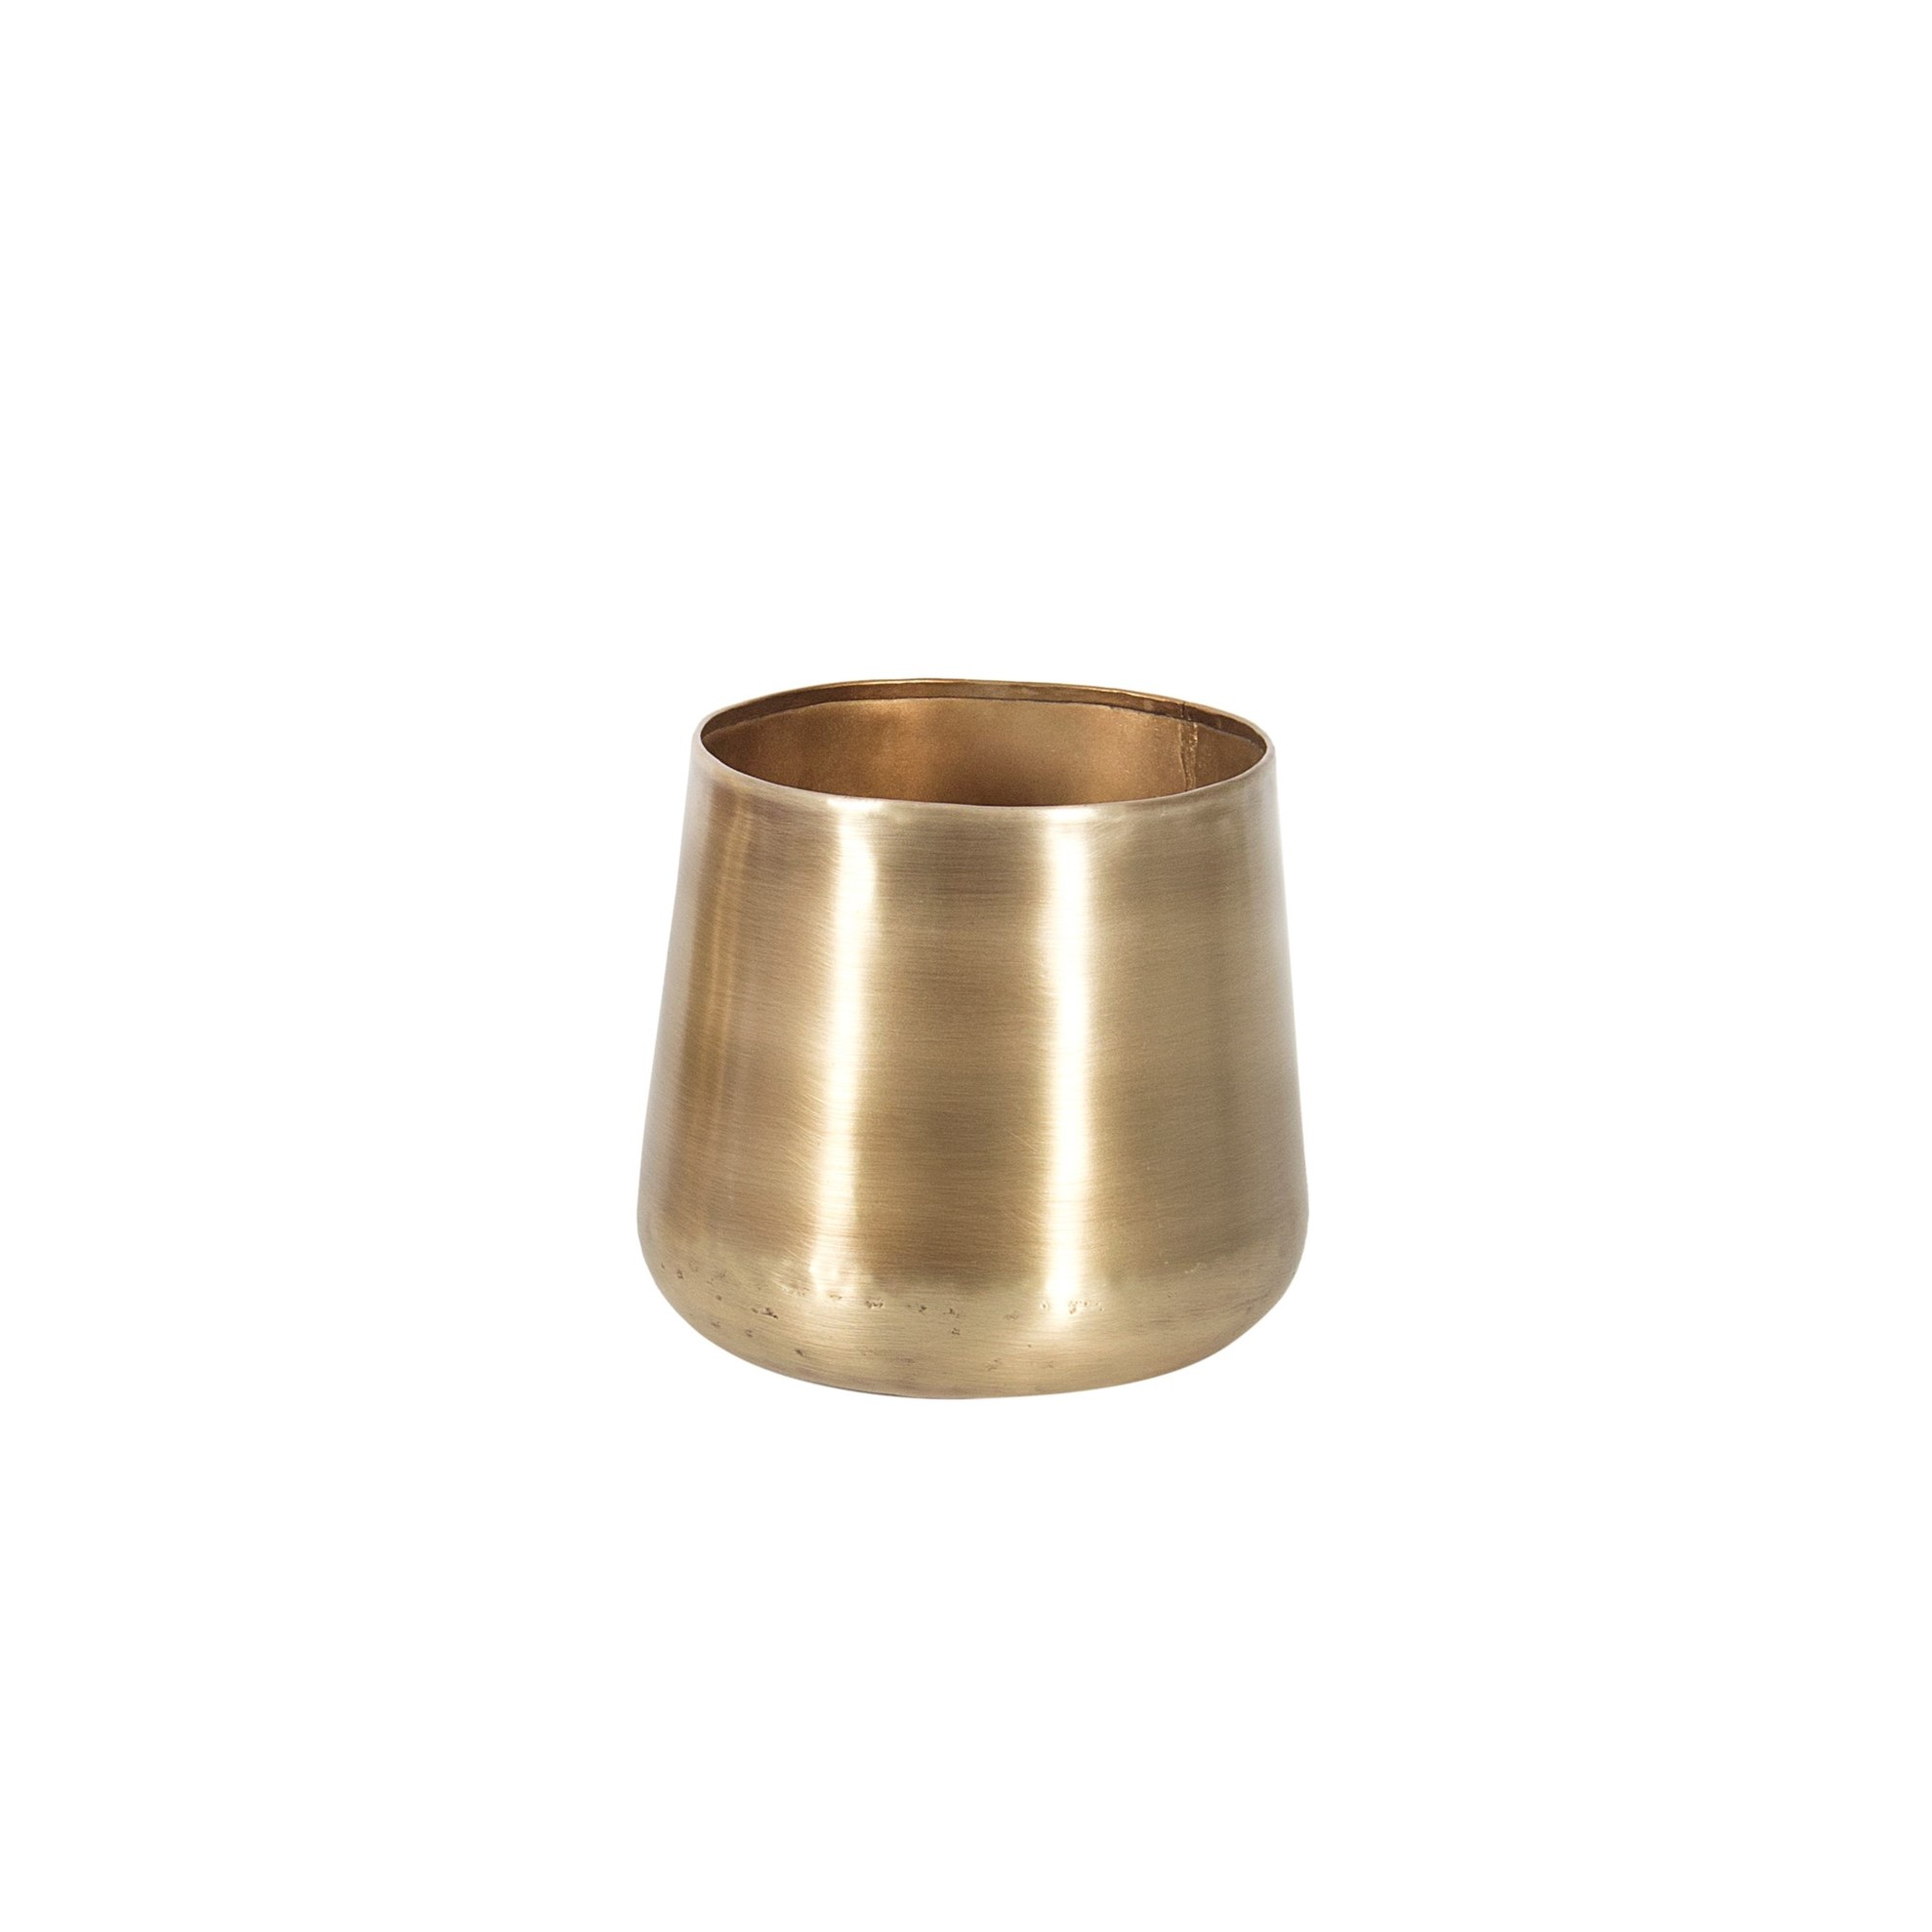 "5"" Brass Plated Metal Planter, Amanda's House Of Elegance  ($20.95)"